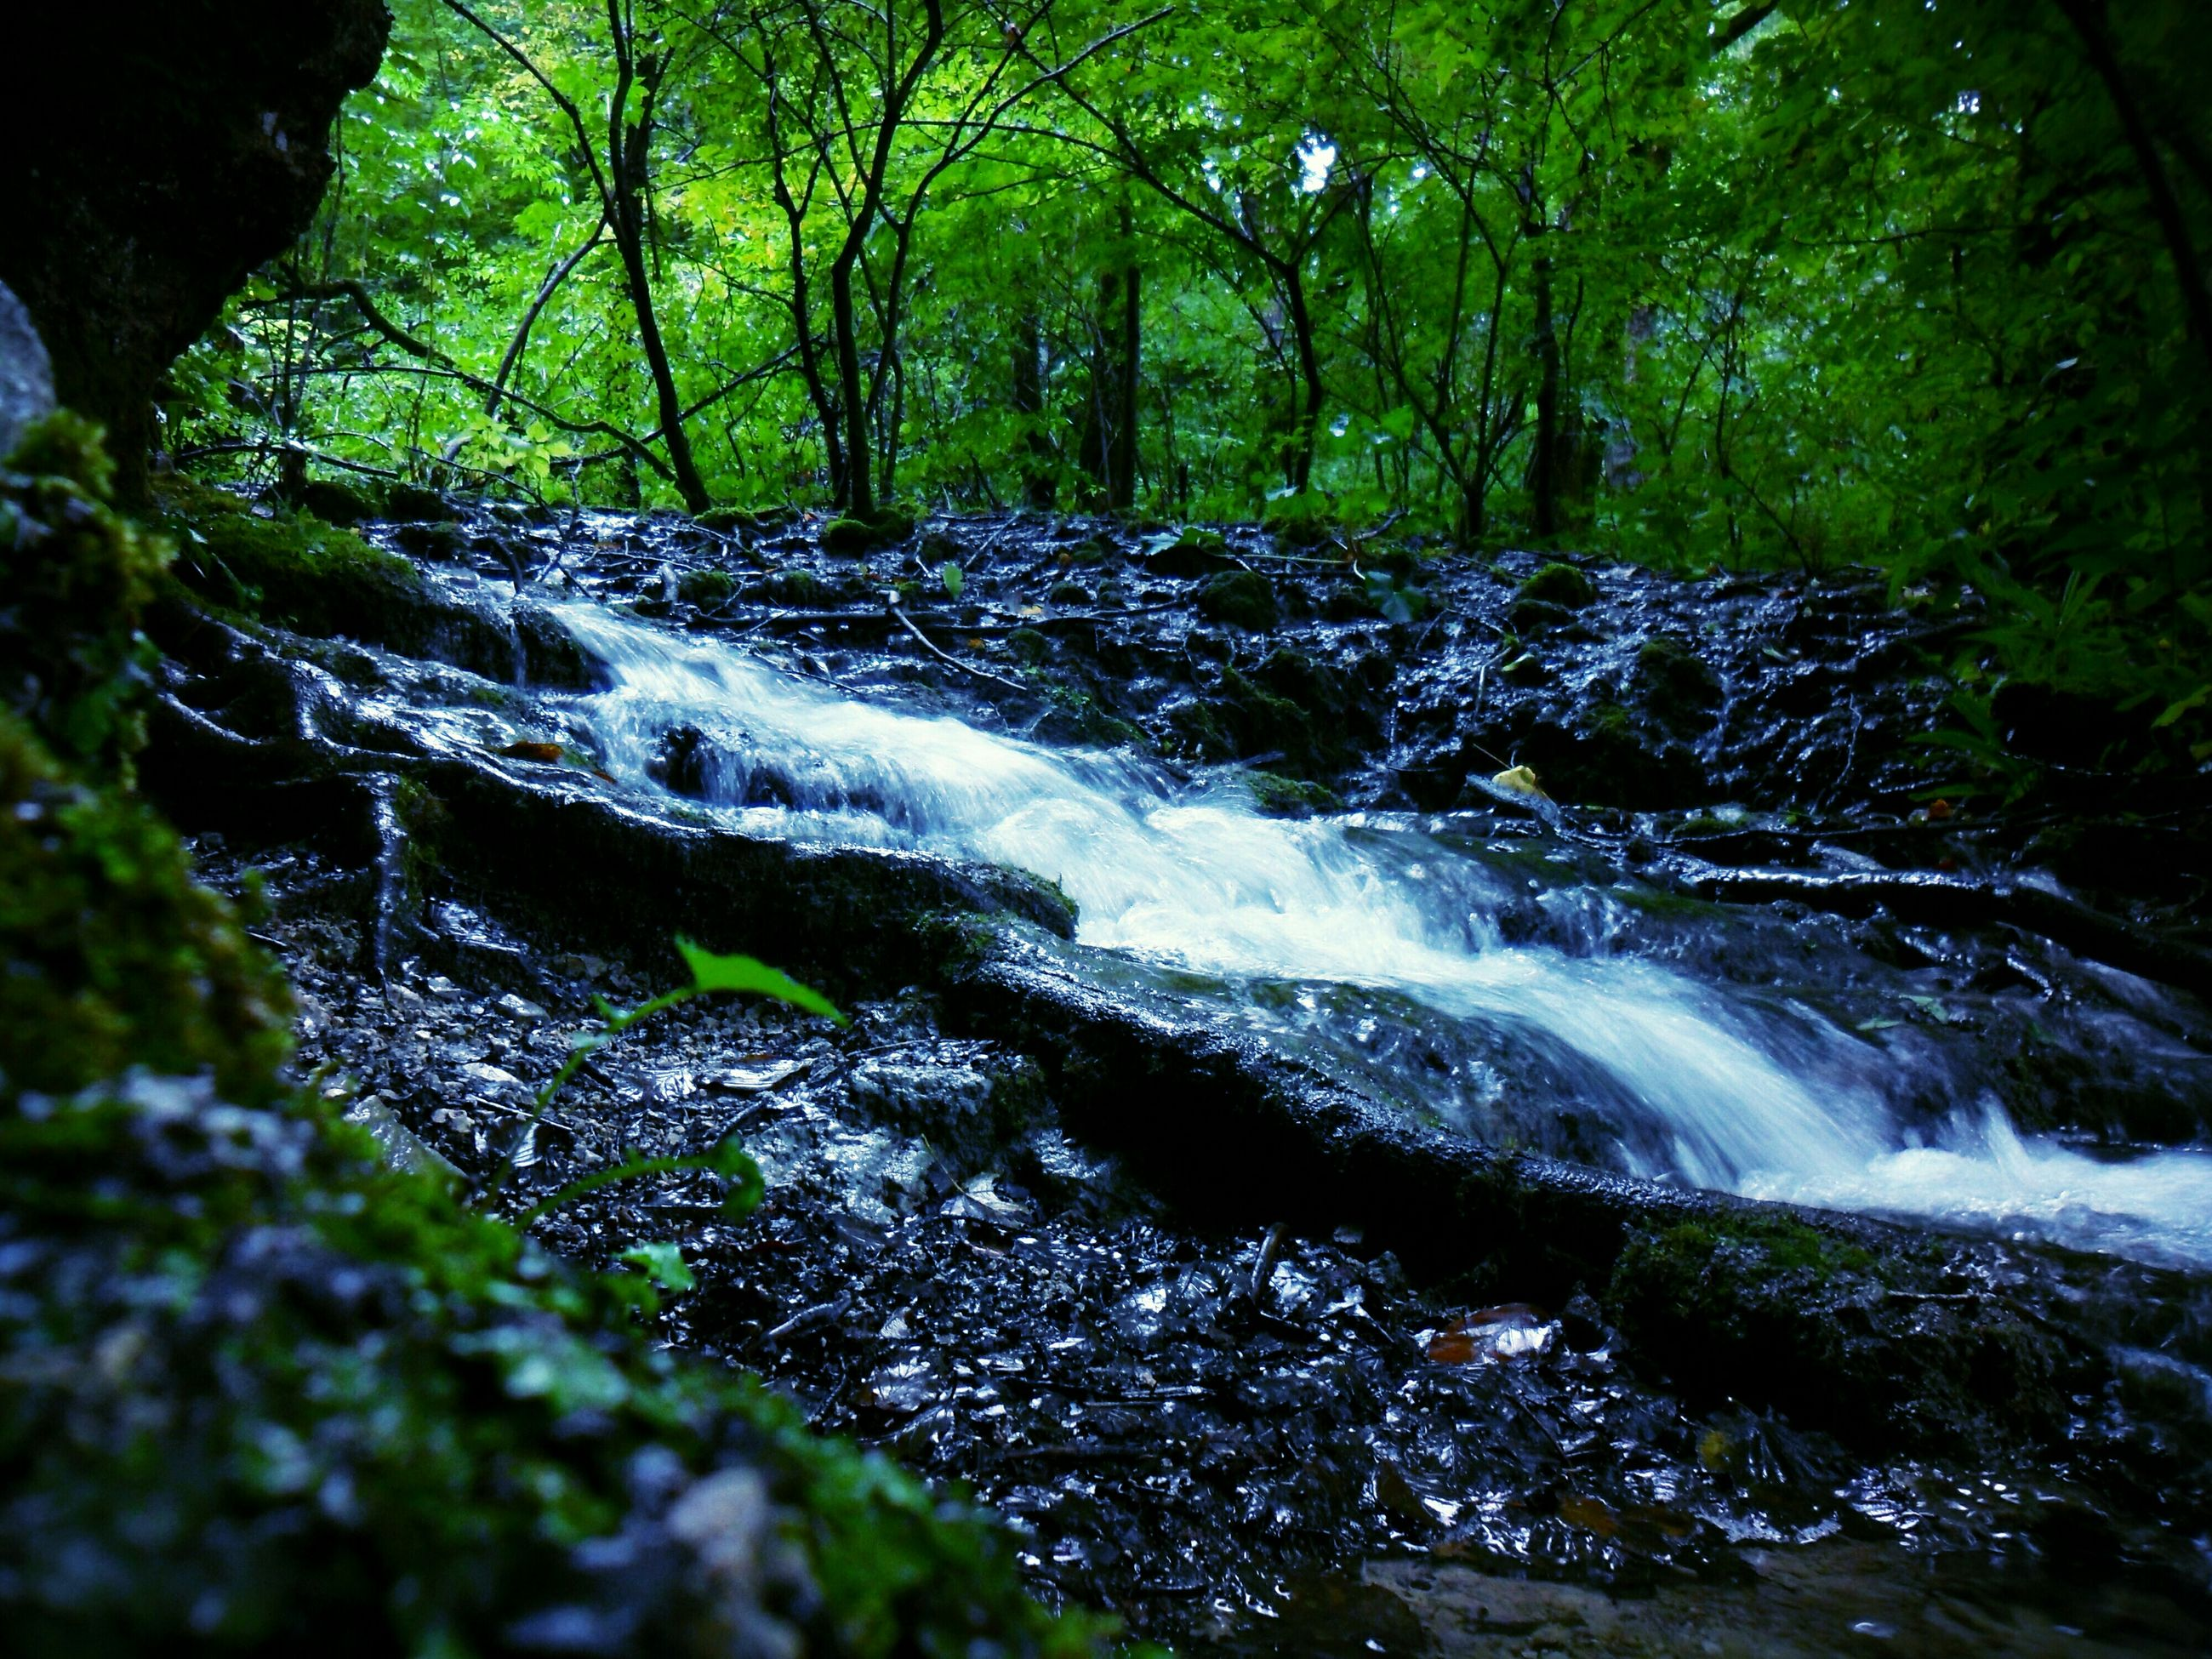 forest, tree, nature, beauty in nature, water, flowing water, growth, tranquility, flowing, scenics, waterfall, stream, motion, tranquil scene, woodland, green color, non-urban scene, outdoors, plant, idyllic